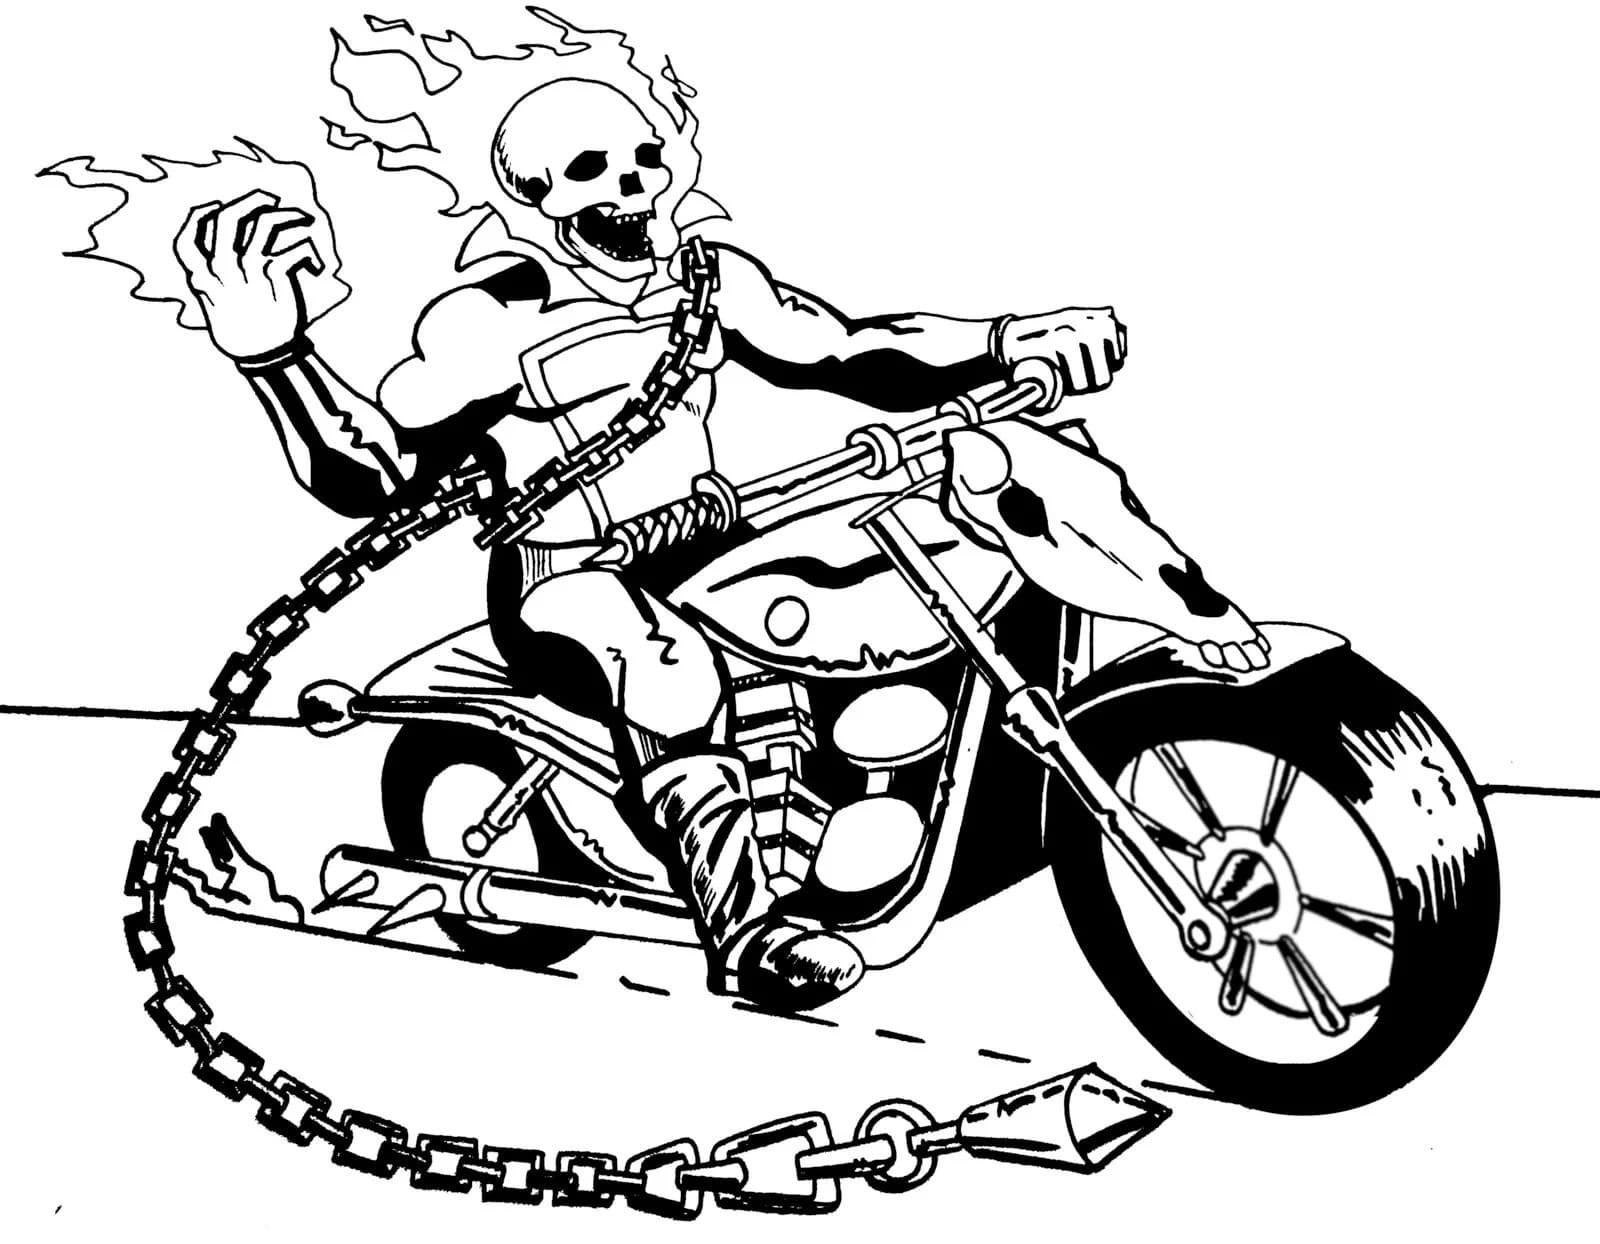 coloring motorcycle pages cool coloring motorcycles motorcycles free coloring pages motorcycle coloring